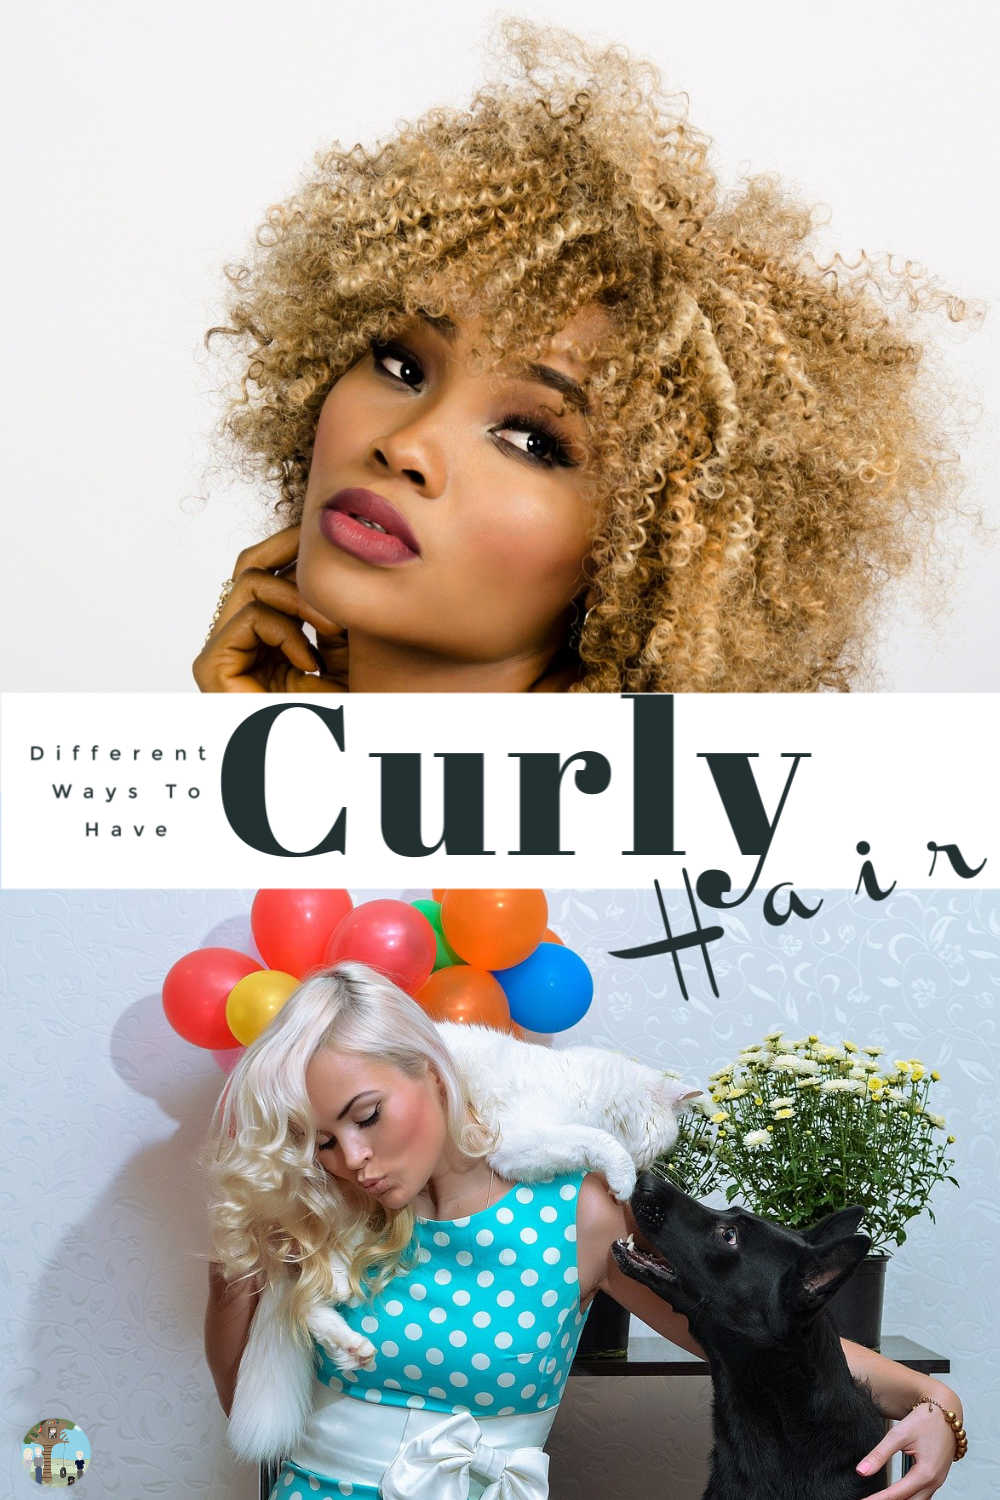 Different ways to curl your hair or have curly hair